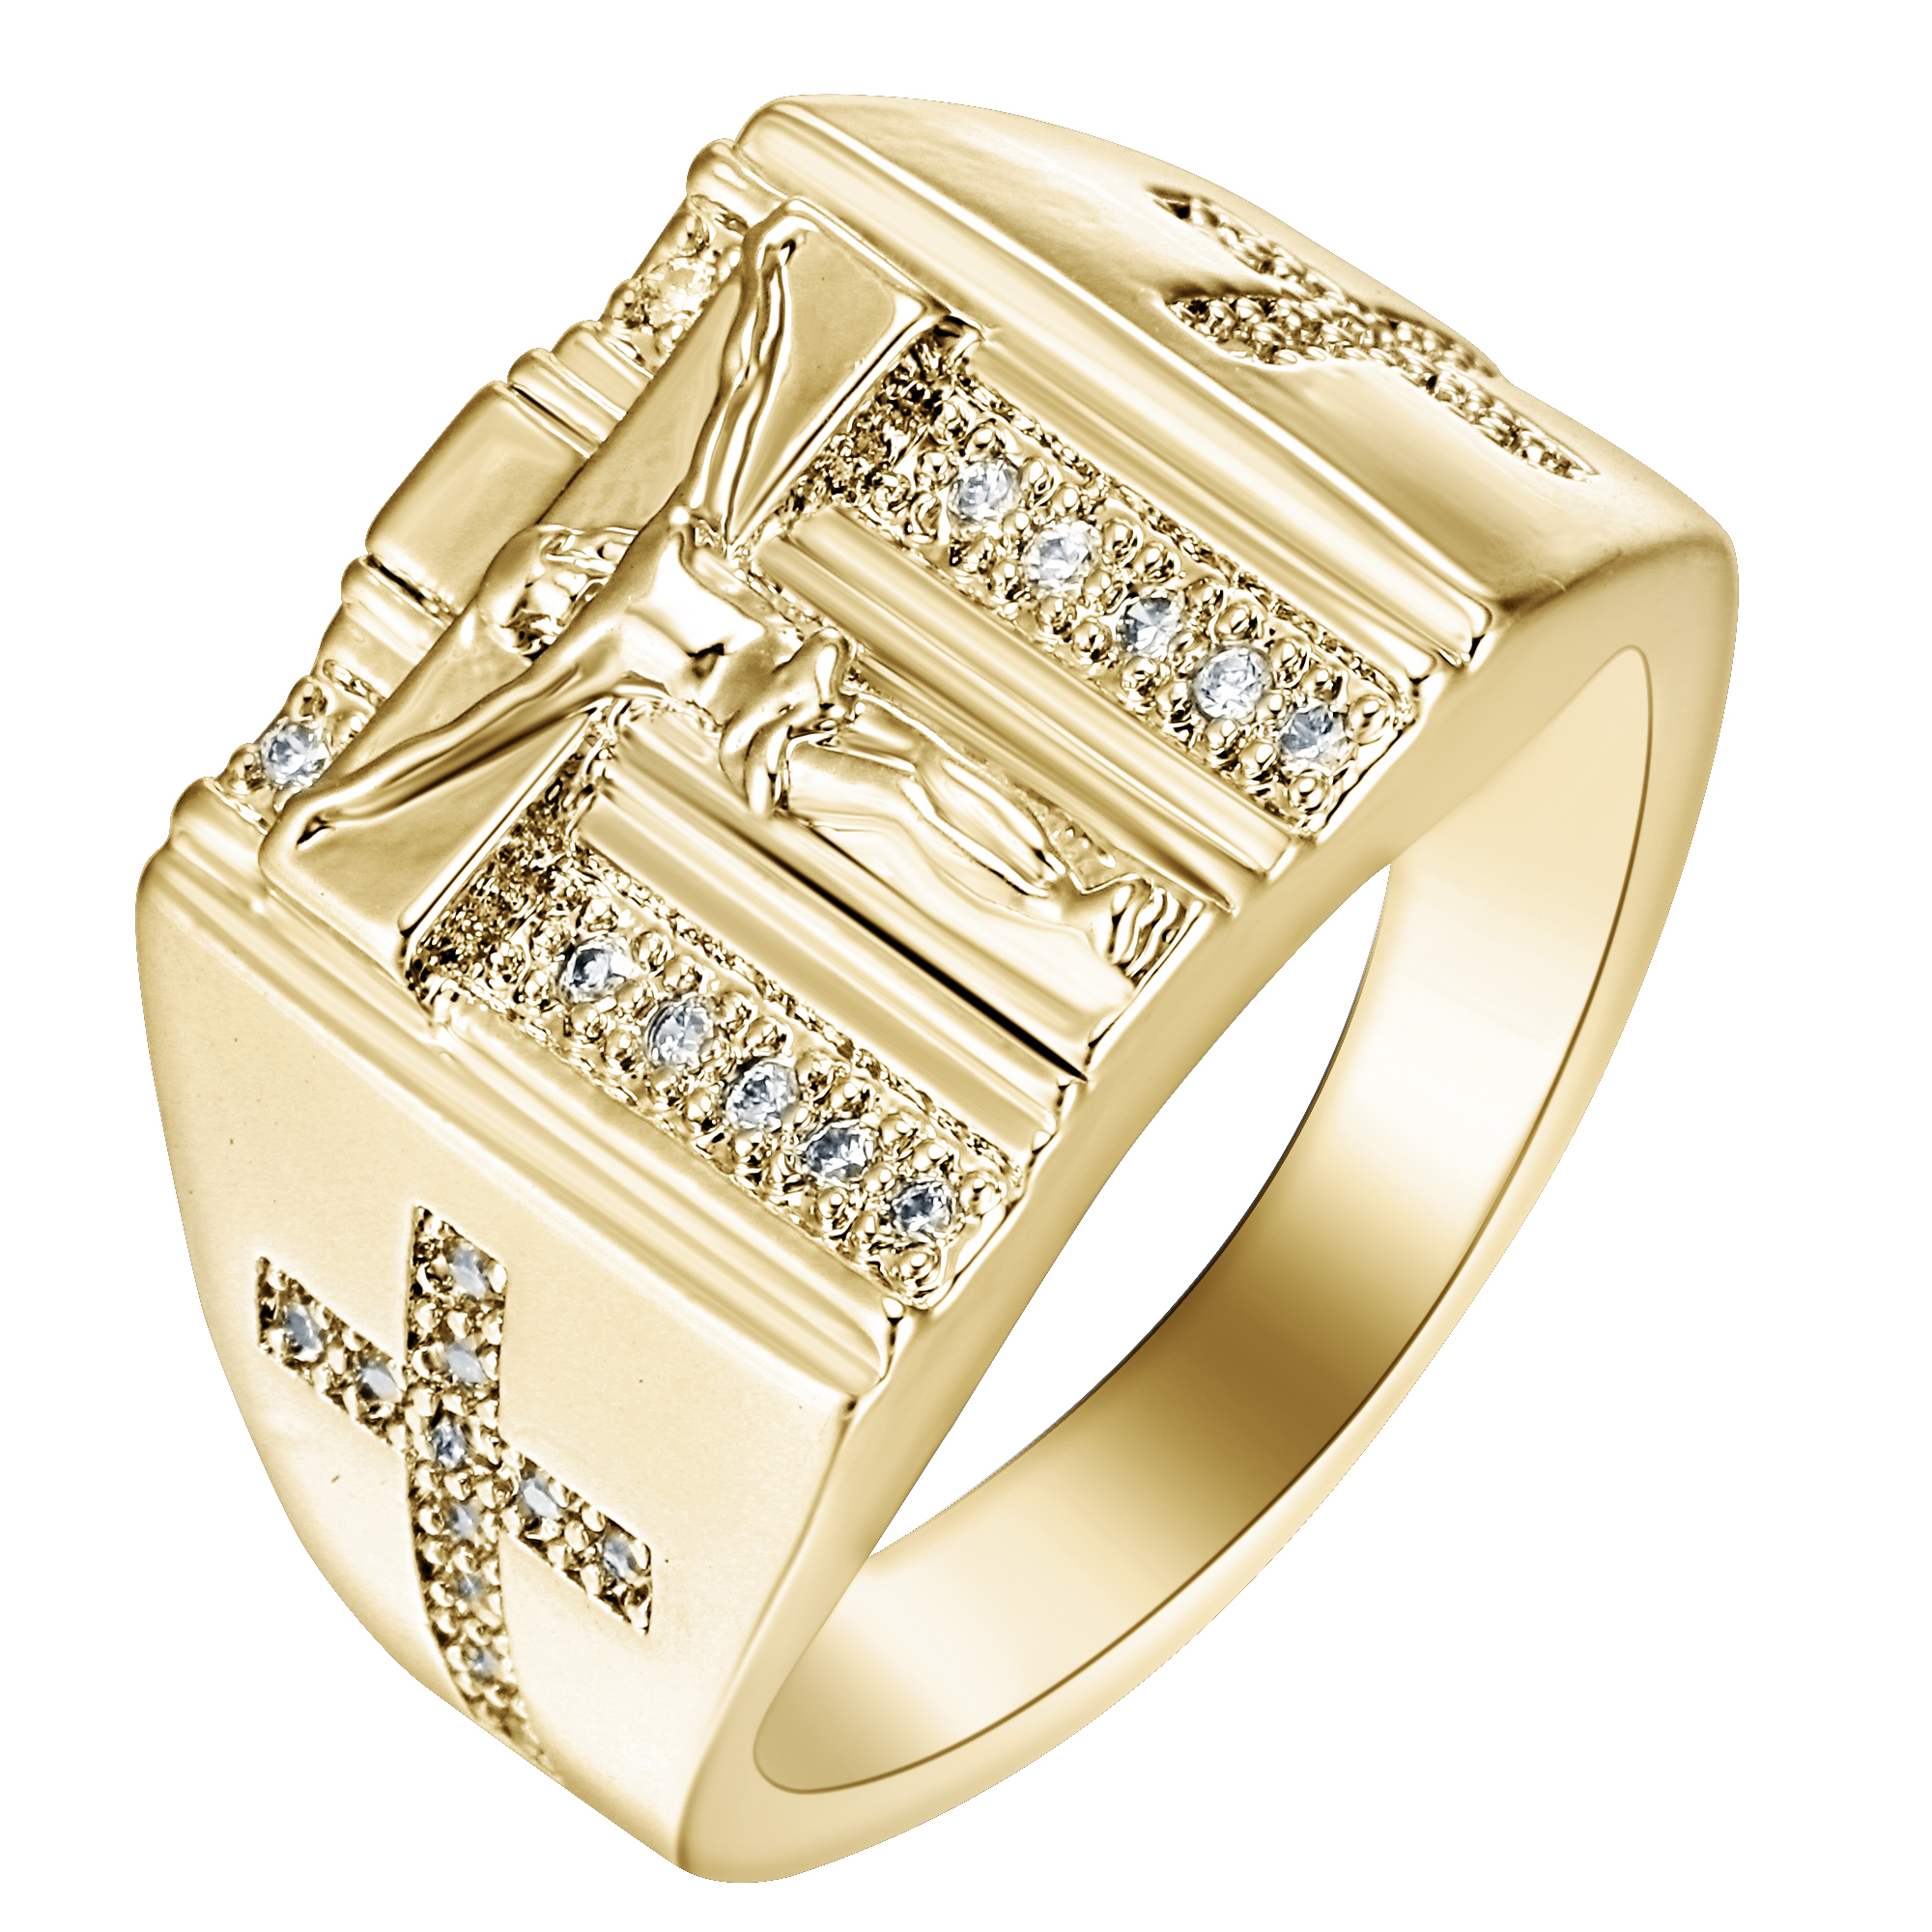 b solitaire proposal gent ring products diamond rings the jewellerists gold wedding in white